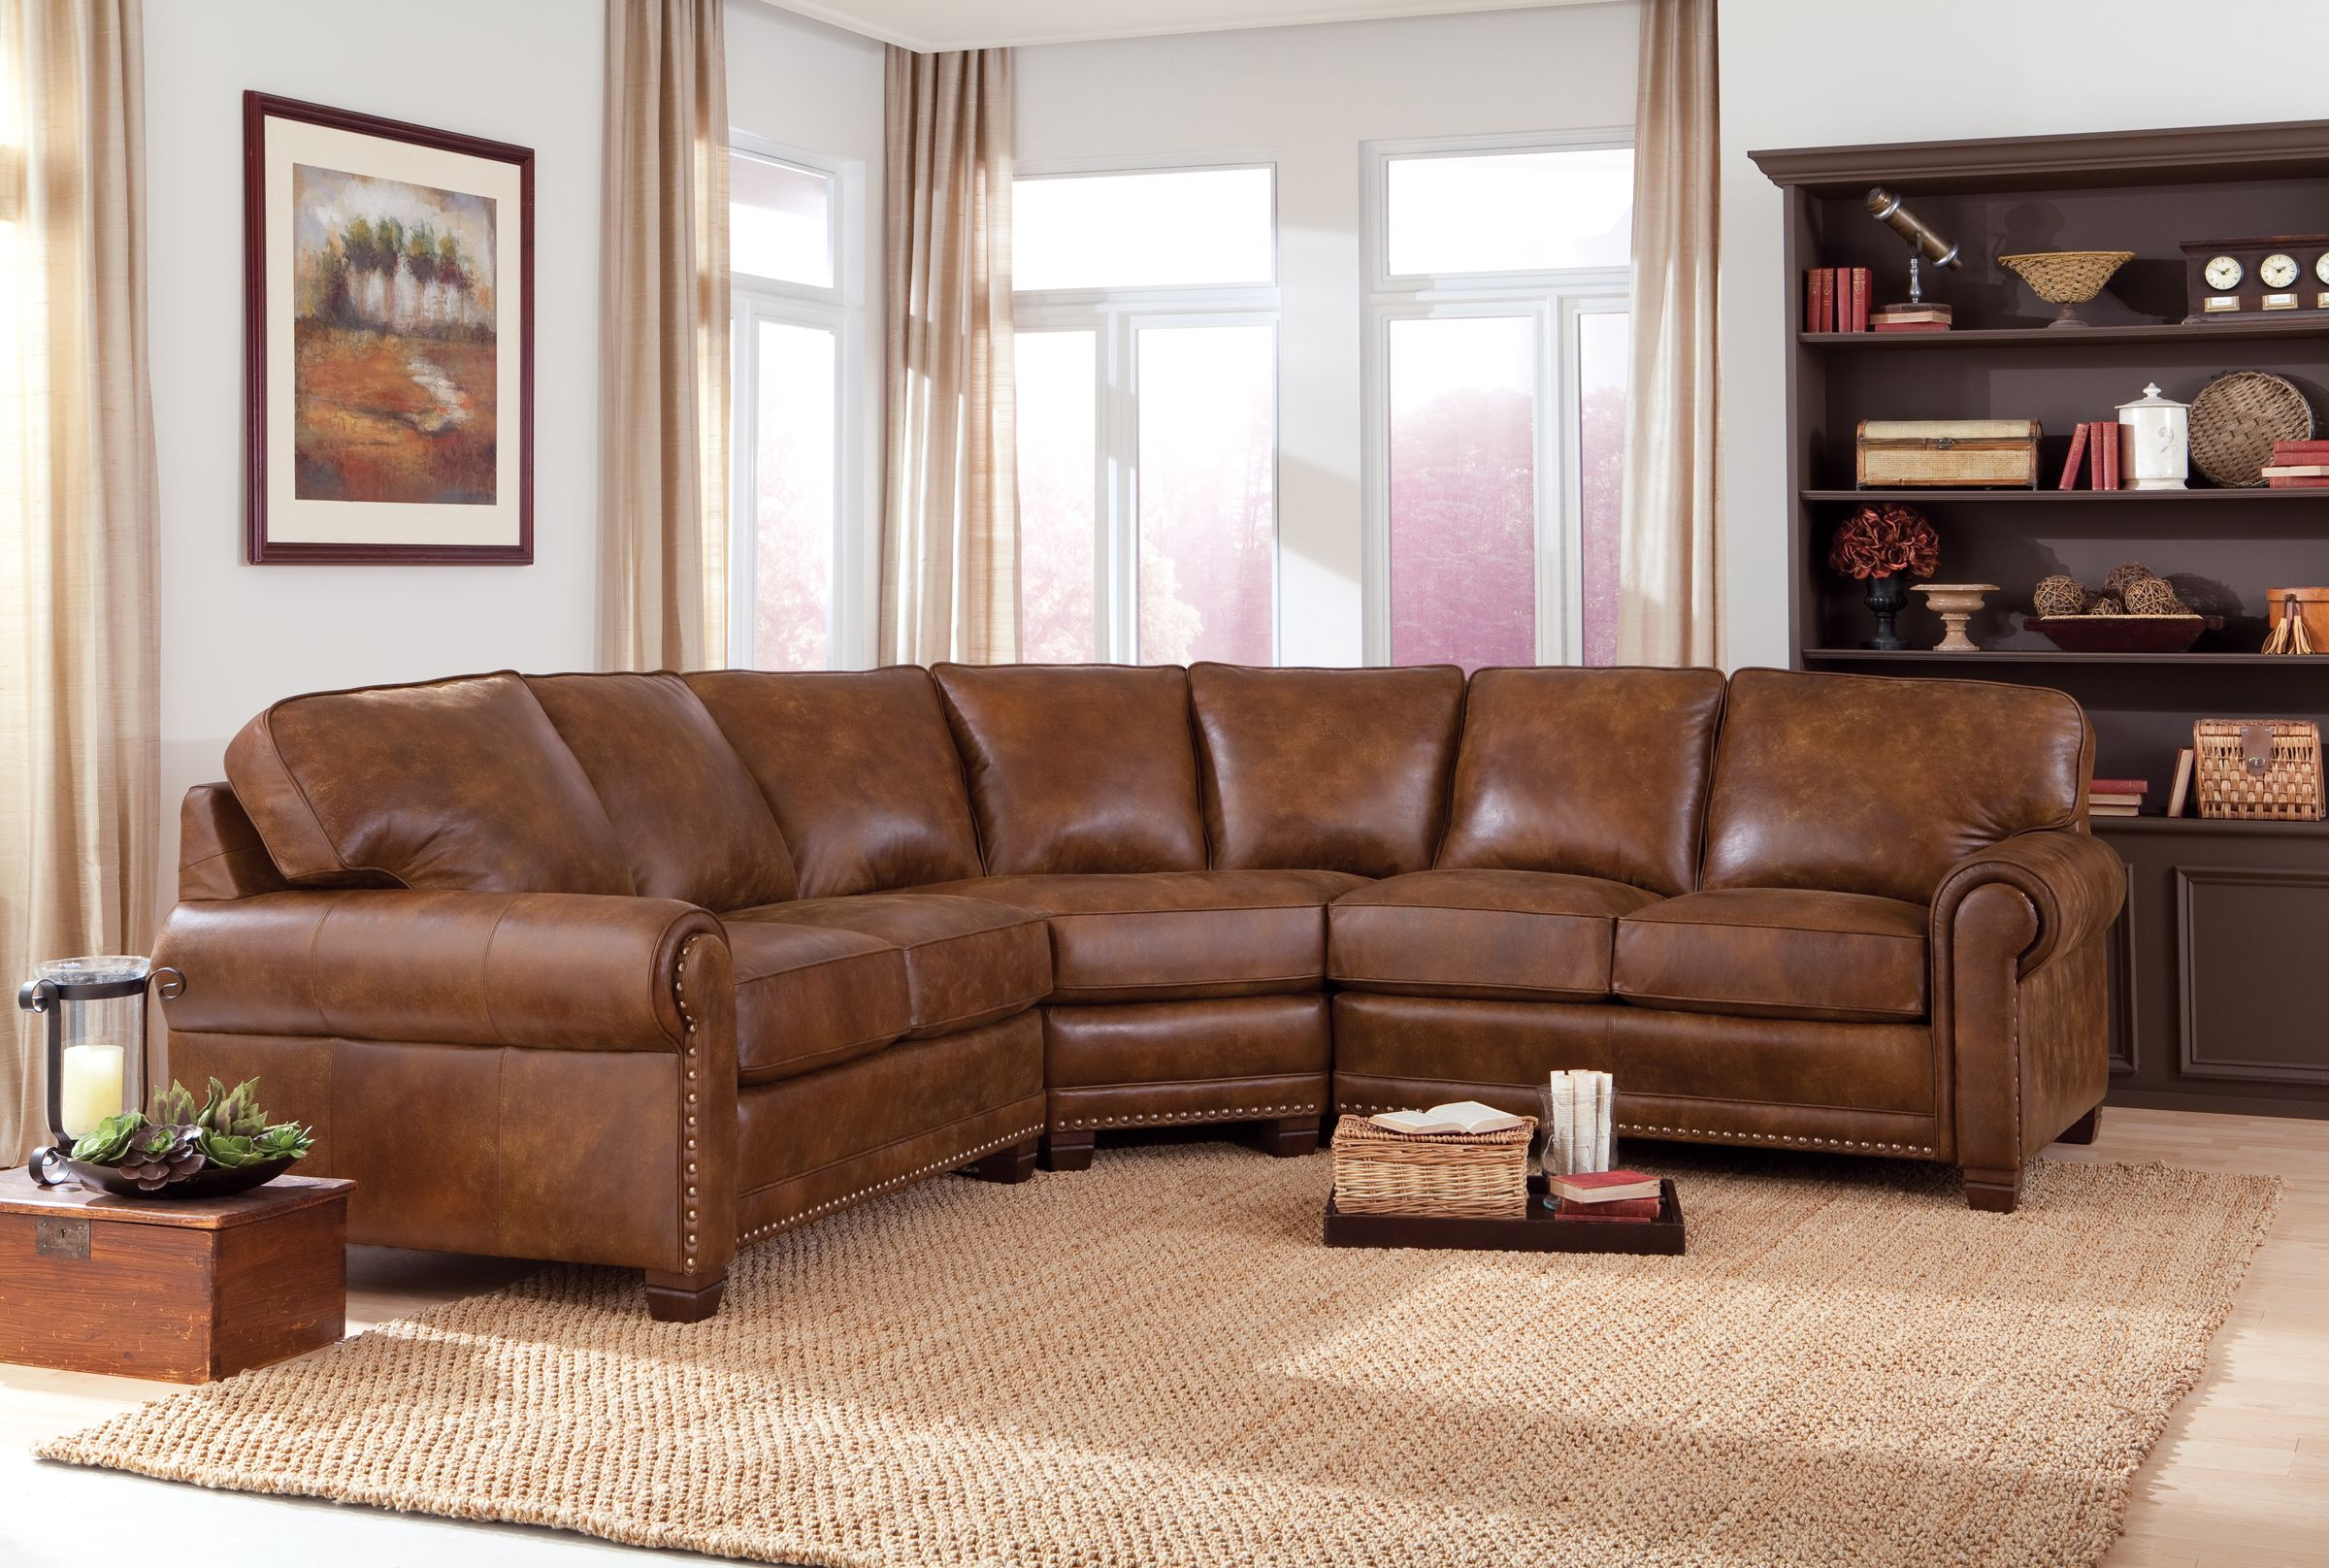 393 Smith Brothers Leather Sectional Living Room Furniture